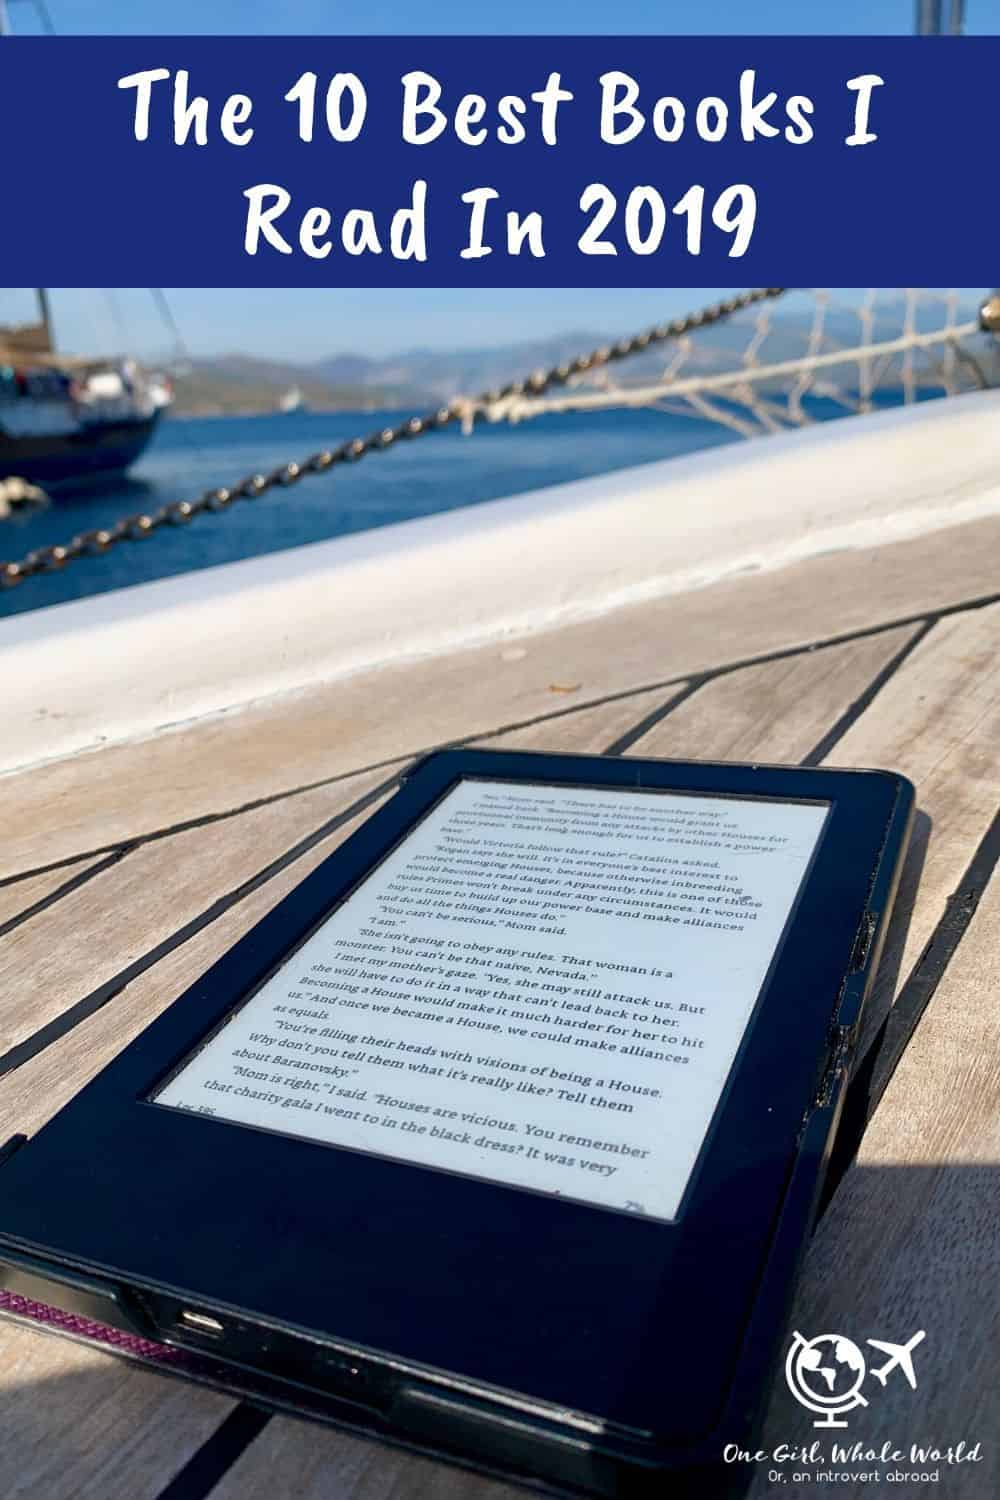 10 Best Books I Read in 2019 | From fascinating non-fiction to charming romances, I share some of my faves from last year. Best books 2019. #bestbooks #readinglist